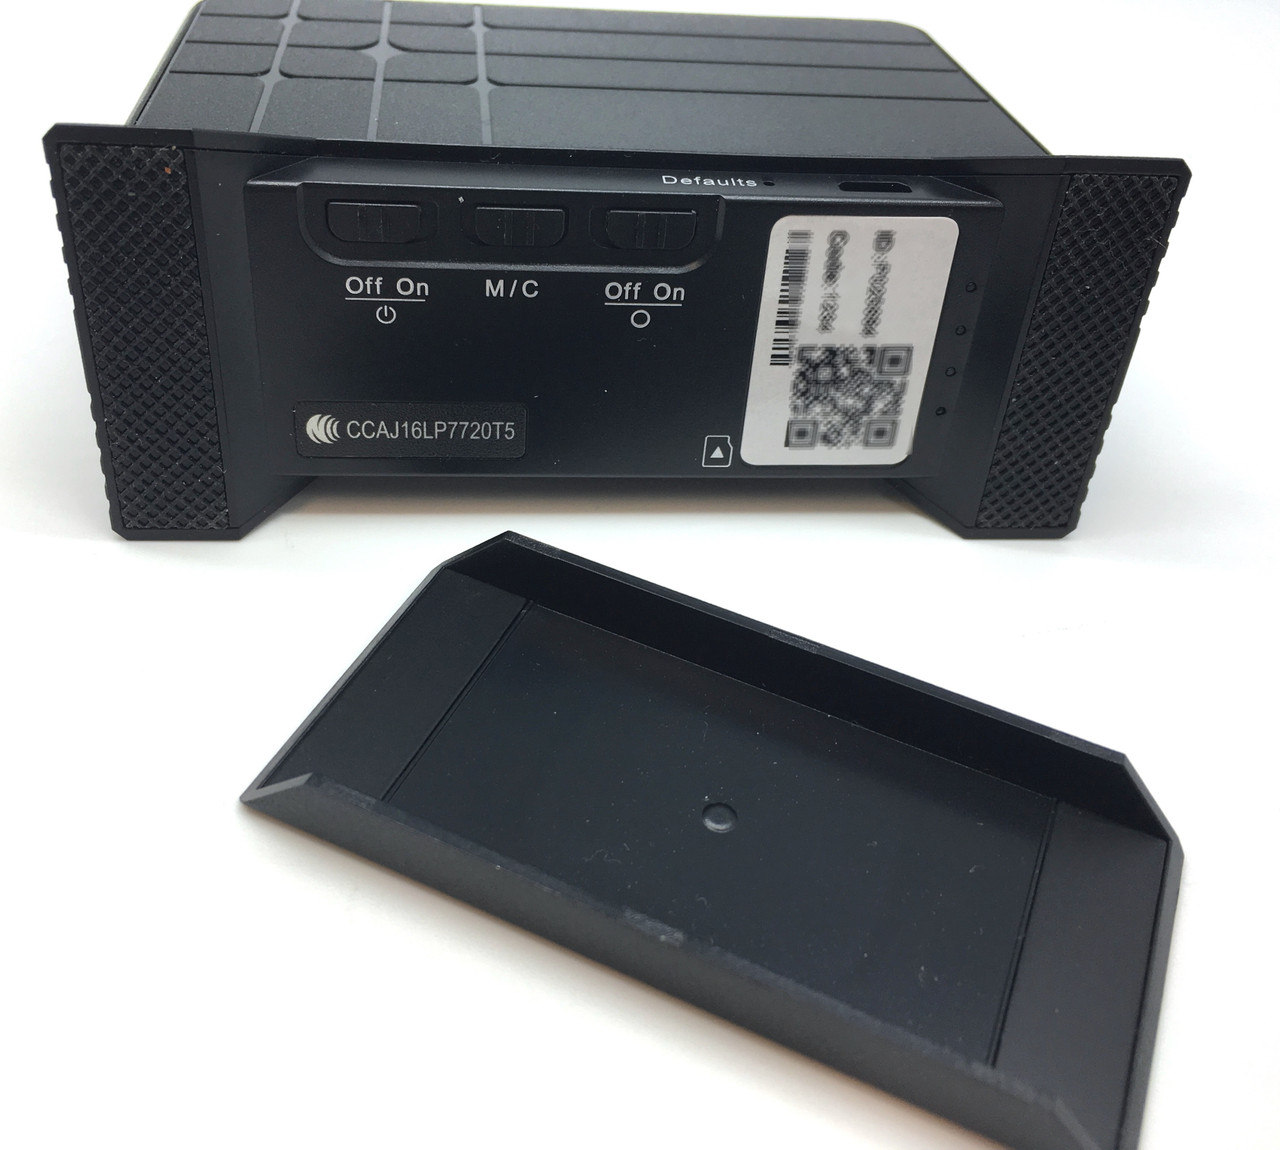 Lawmate PV-CS10i Covert Camera and DVR USB Charging Station bottom open